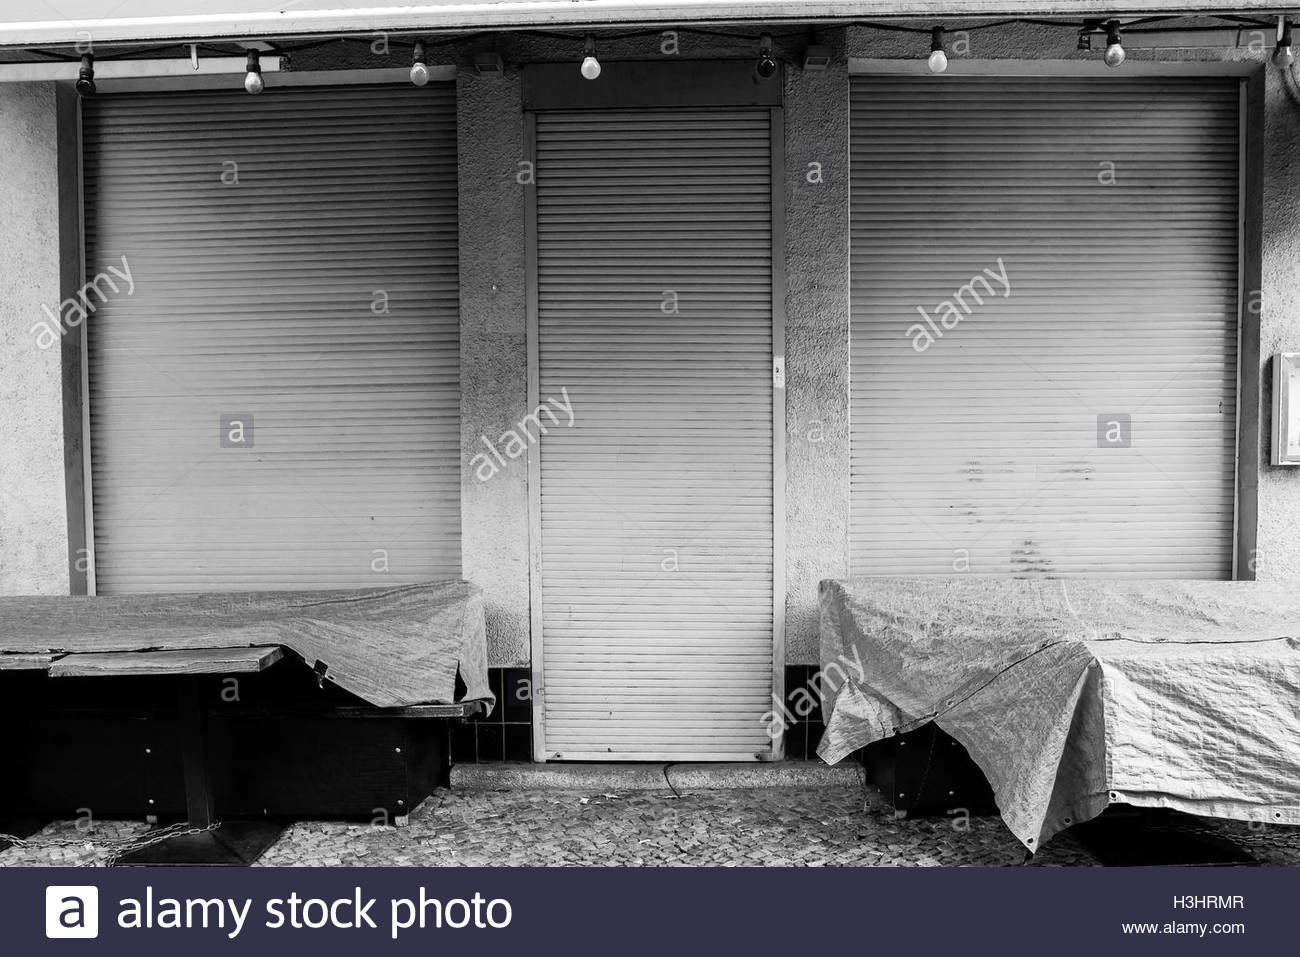 Aabandoned business conceptual photography closed down shop city business abstract depression,loneliness,sadness - Stock Image